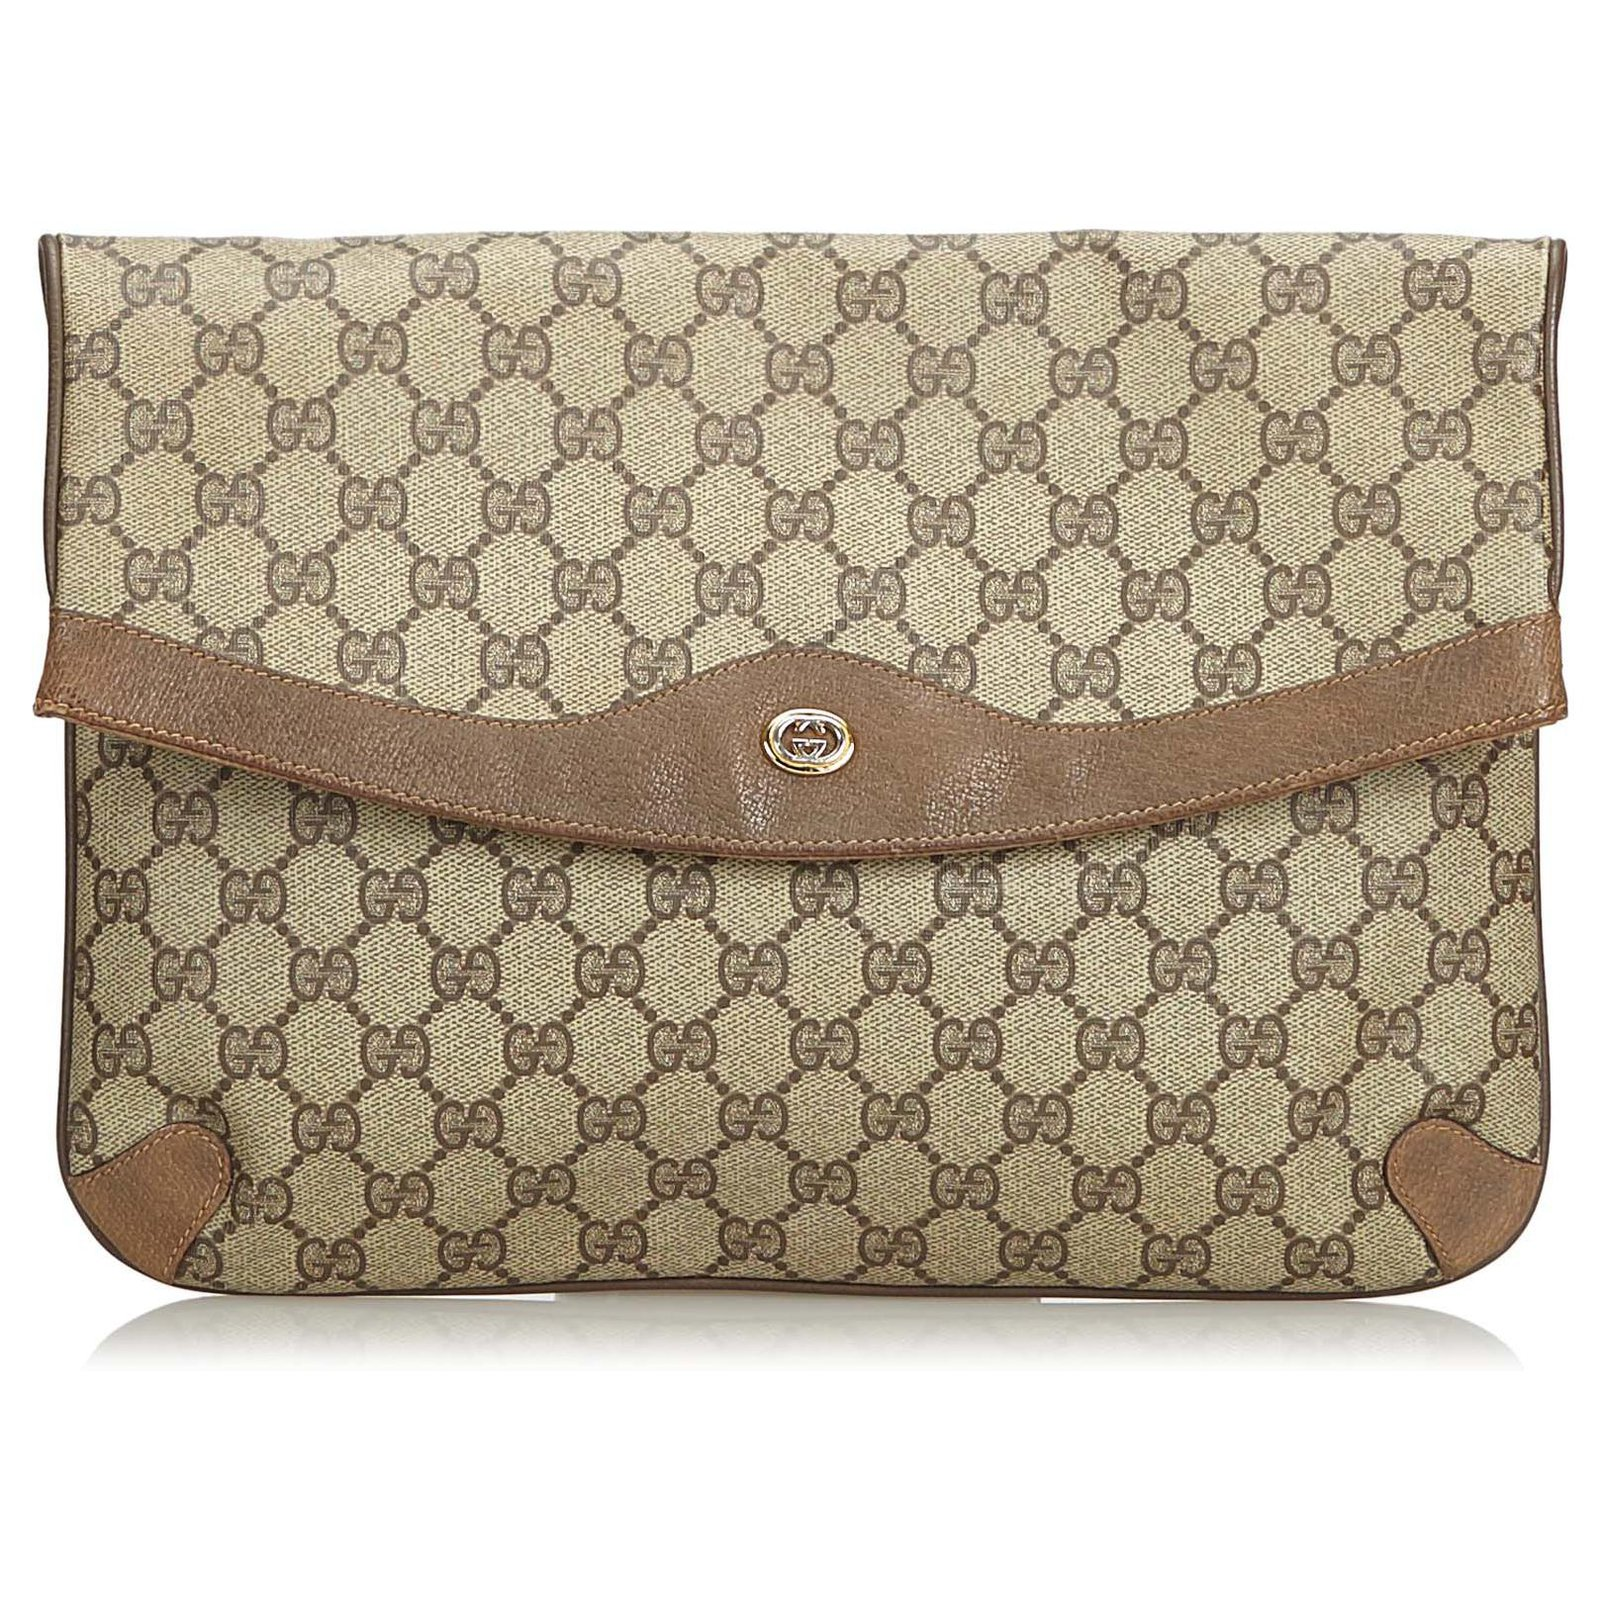 a4cf6aec6 Gucci Gucci Brown GG Clutch Bag Clutch bags Leather,Other,Plastic  Brown,Beige